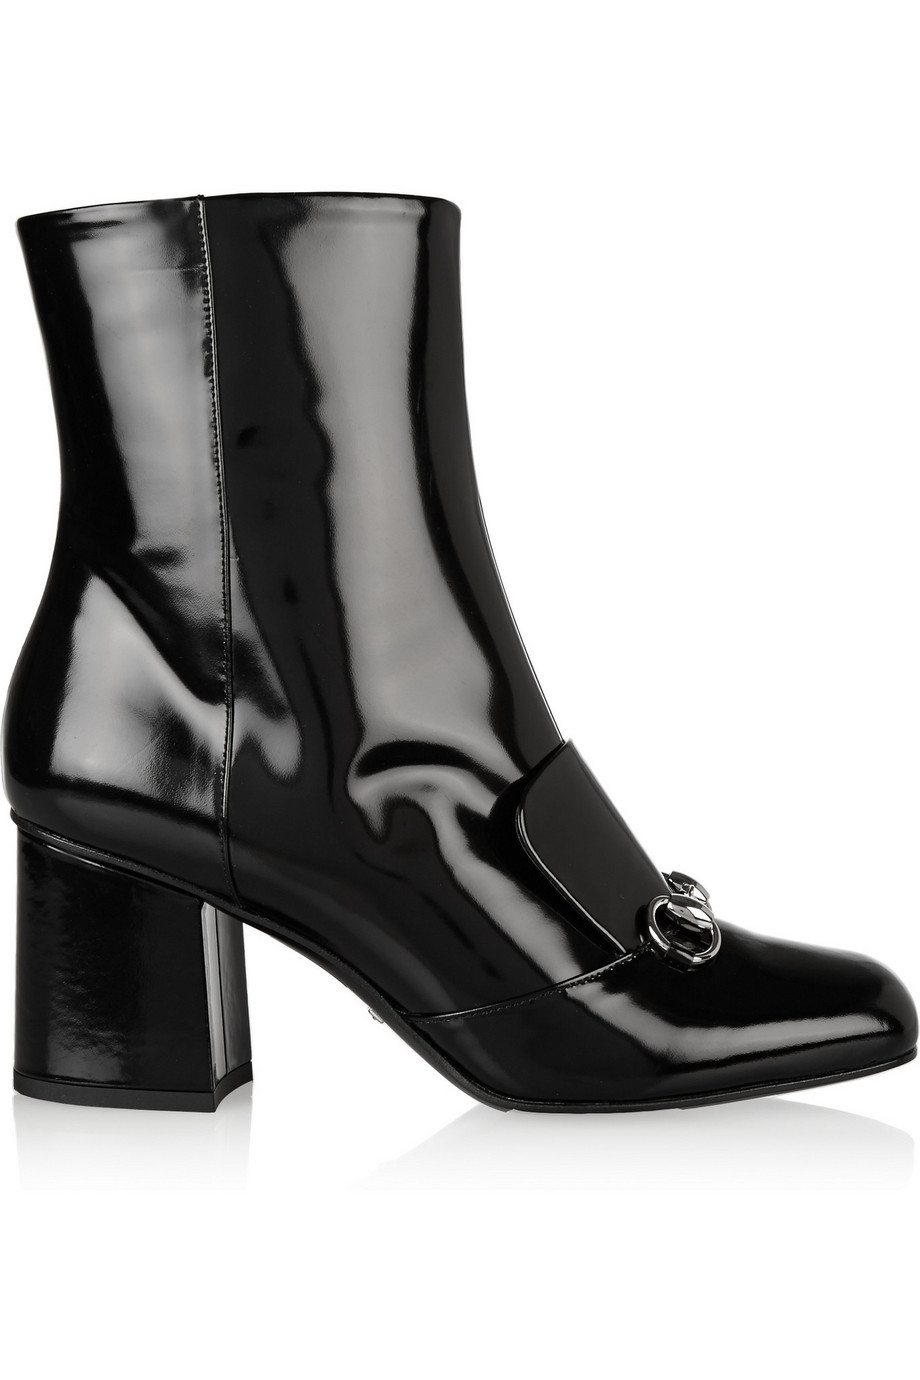 Gucci Horsebit-Detailed Patent-Leather Ankle Boots, Black, Women's US Size: 4.5, Size: 35